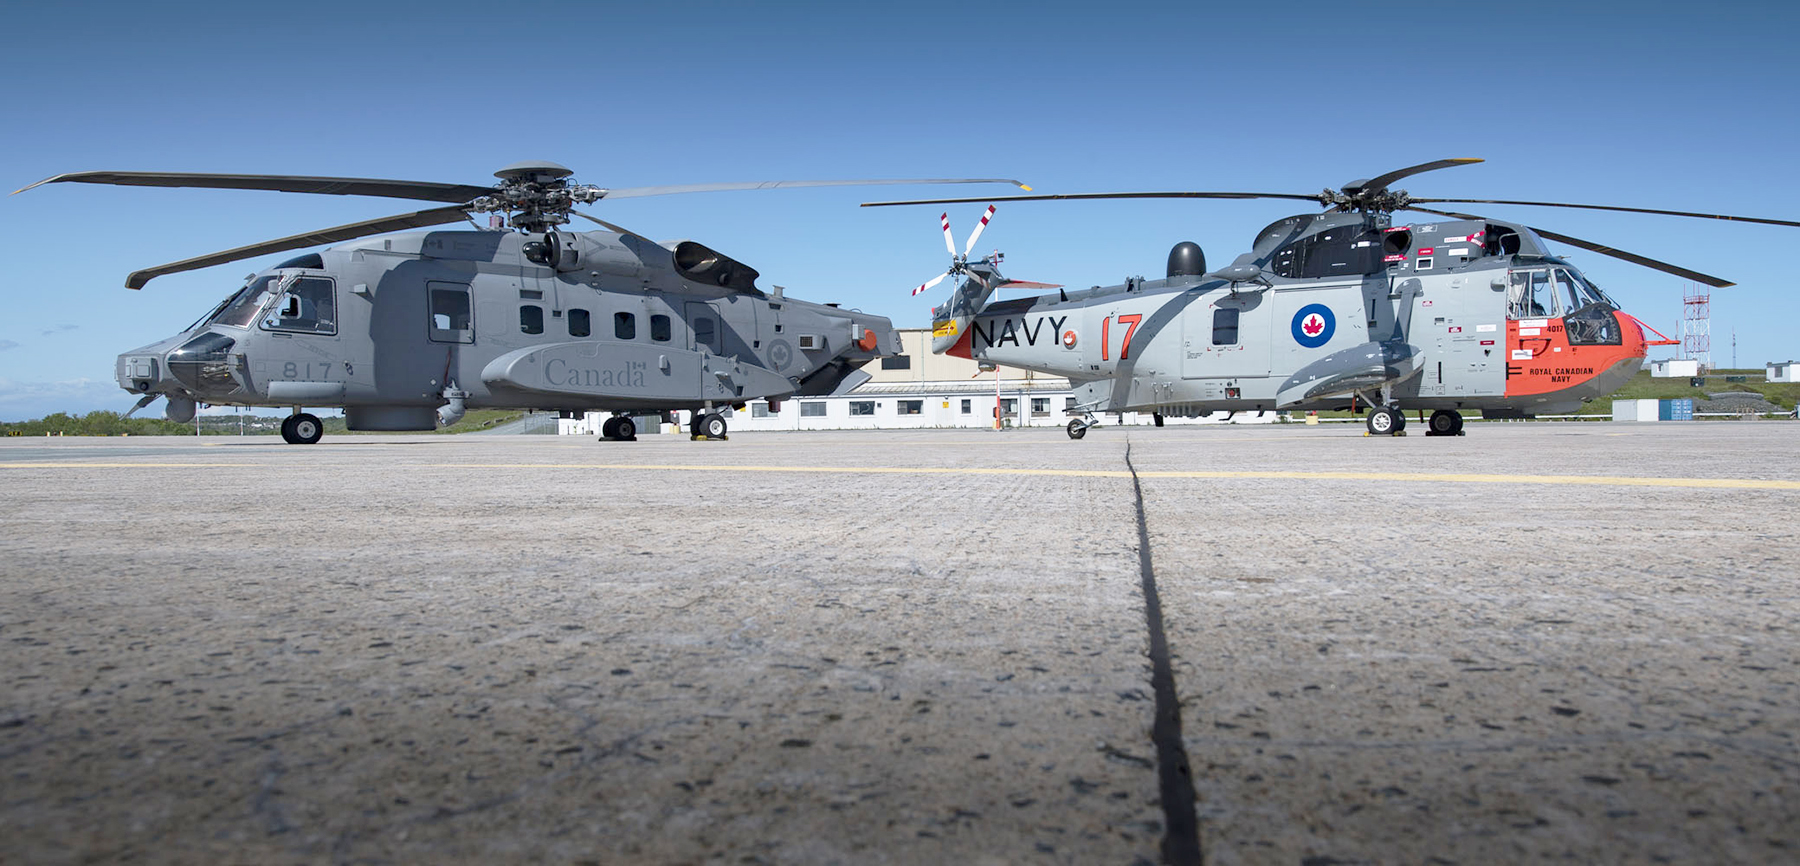 The Sea King helicopter CH12417, which has been painted in its original Royal Canadian Navy livery in honour of the venerable helicopter's upcoming retirement (right), and a CH-148 Cyclone helicopter sit on the tarmac at 12 Wing Shearwater, Nova Scotia, on June 7, 2018. PHOTO: Leading Seaman Laurance Clarke, SW05-2018-0245-002